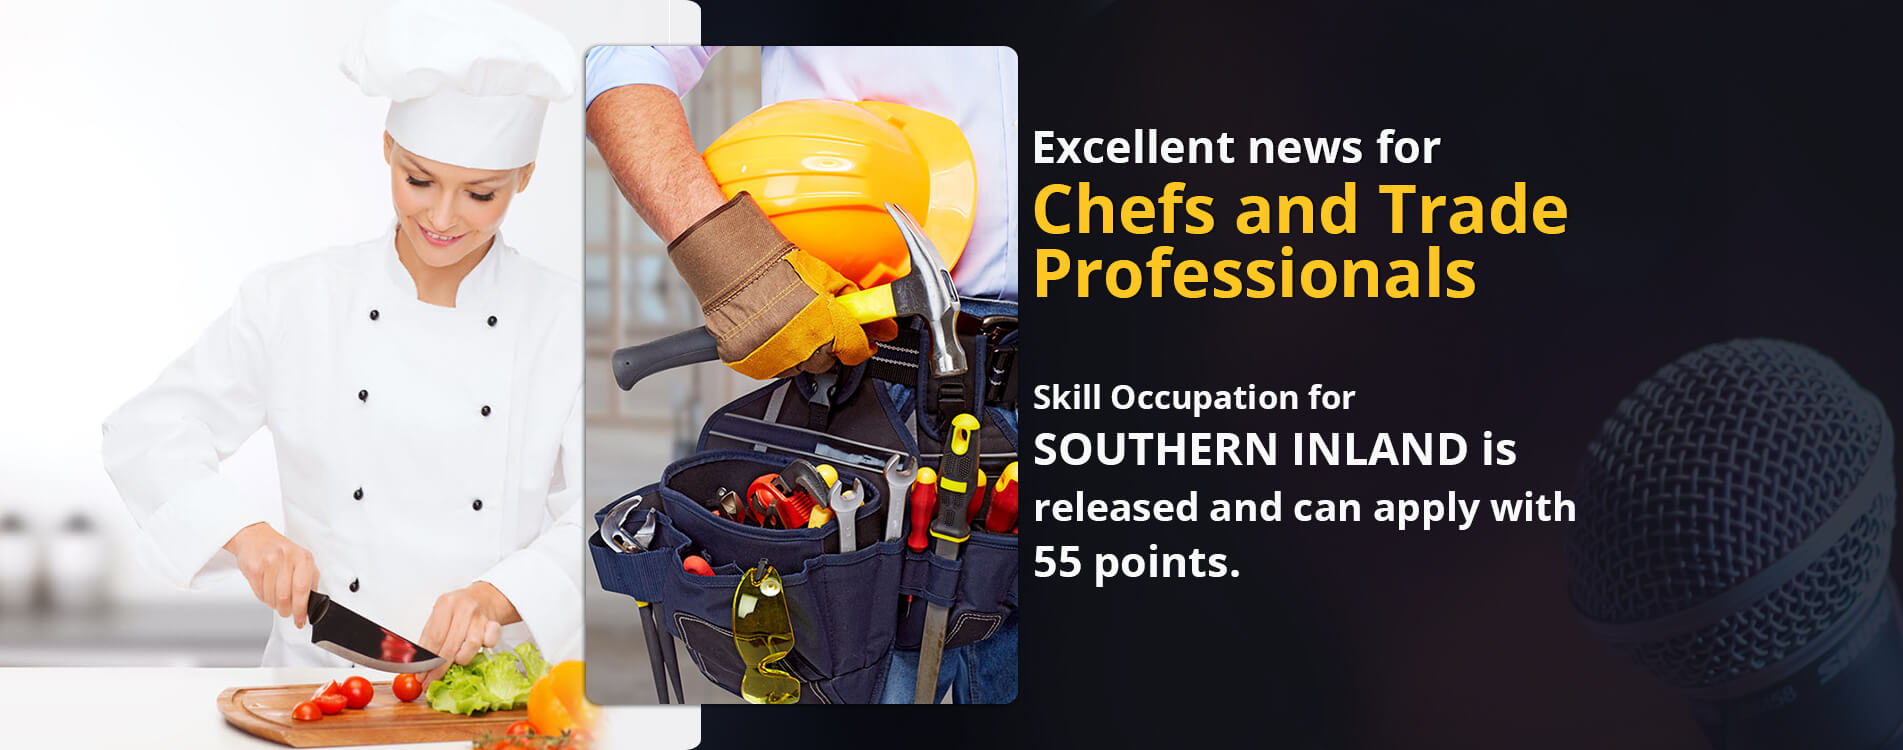 RDA Southern Inland Skilled Occupations List Out on July 1, 2019